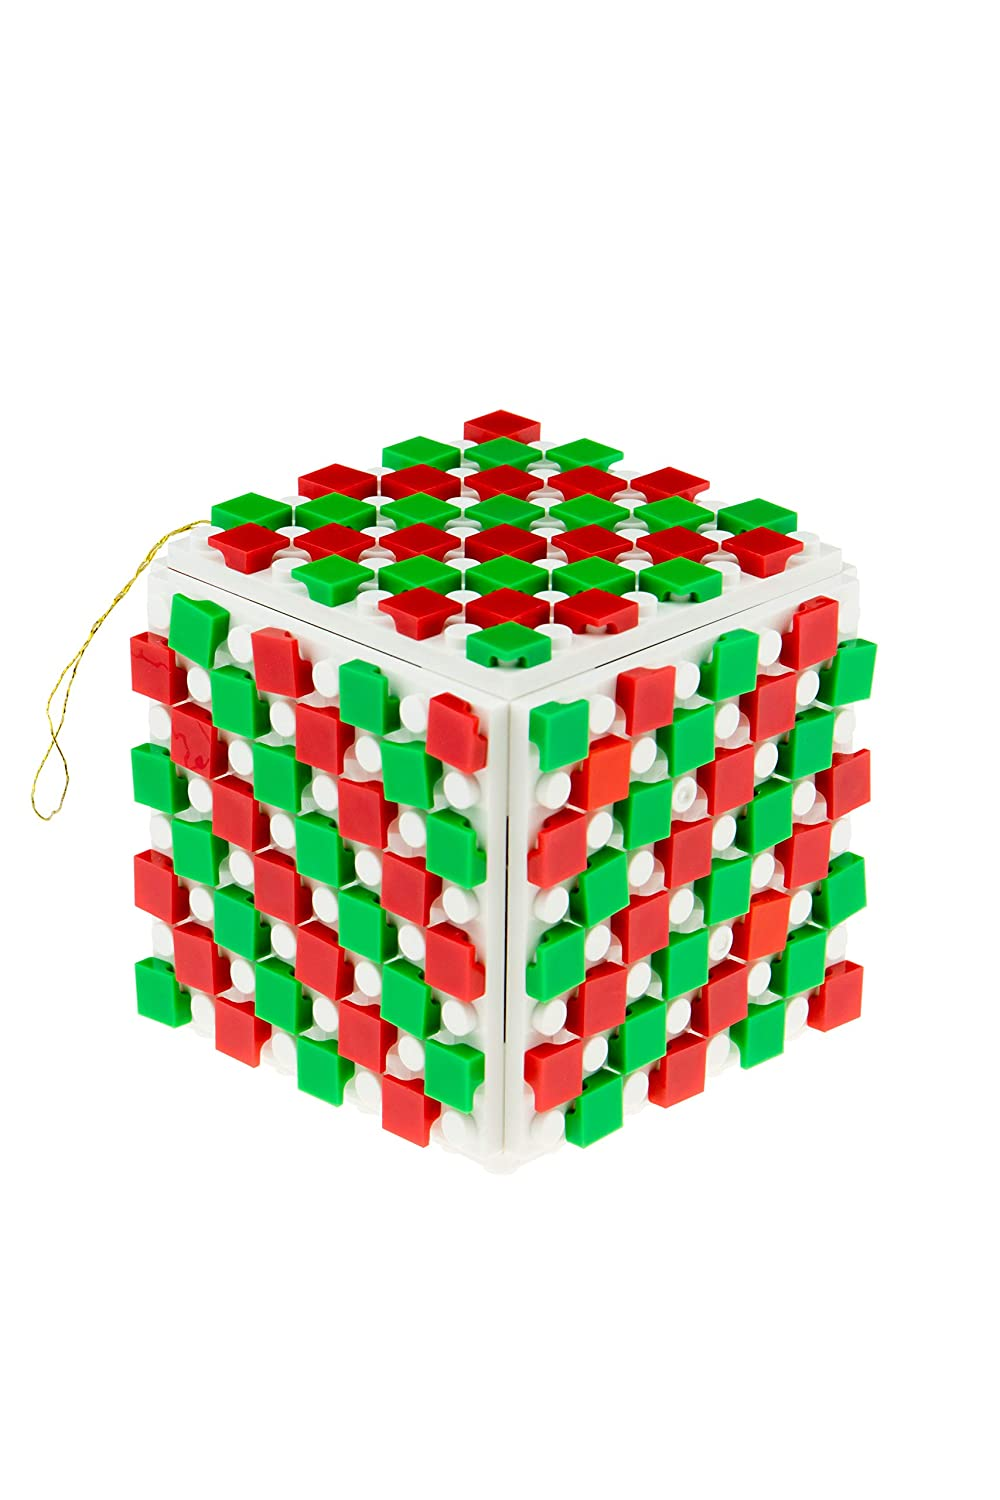 8x8 Baseplates 100/% Compatible with All Major Brands 1x1 Pixels and 3D Briks Strictly Briks Design Your Own Brick Ornament Set for Christmas Tree 164 Pieces Xmas Holiday Decoration STEM Toy